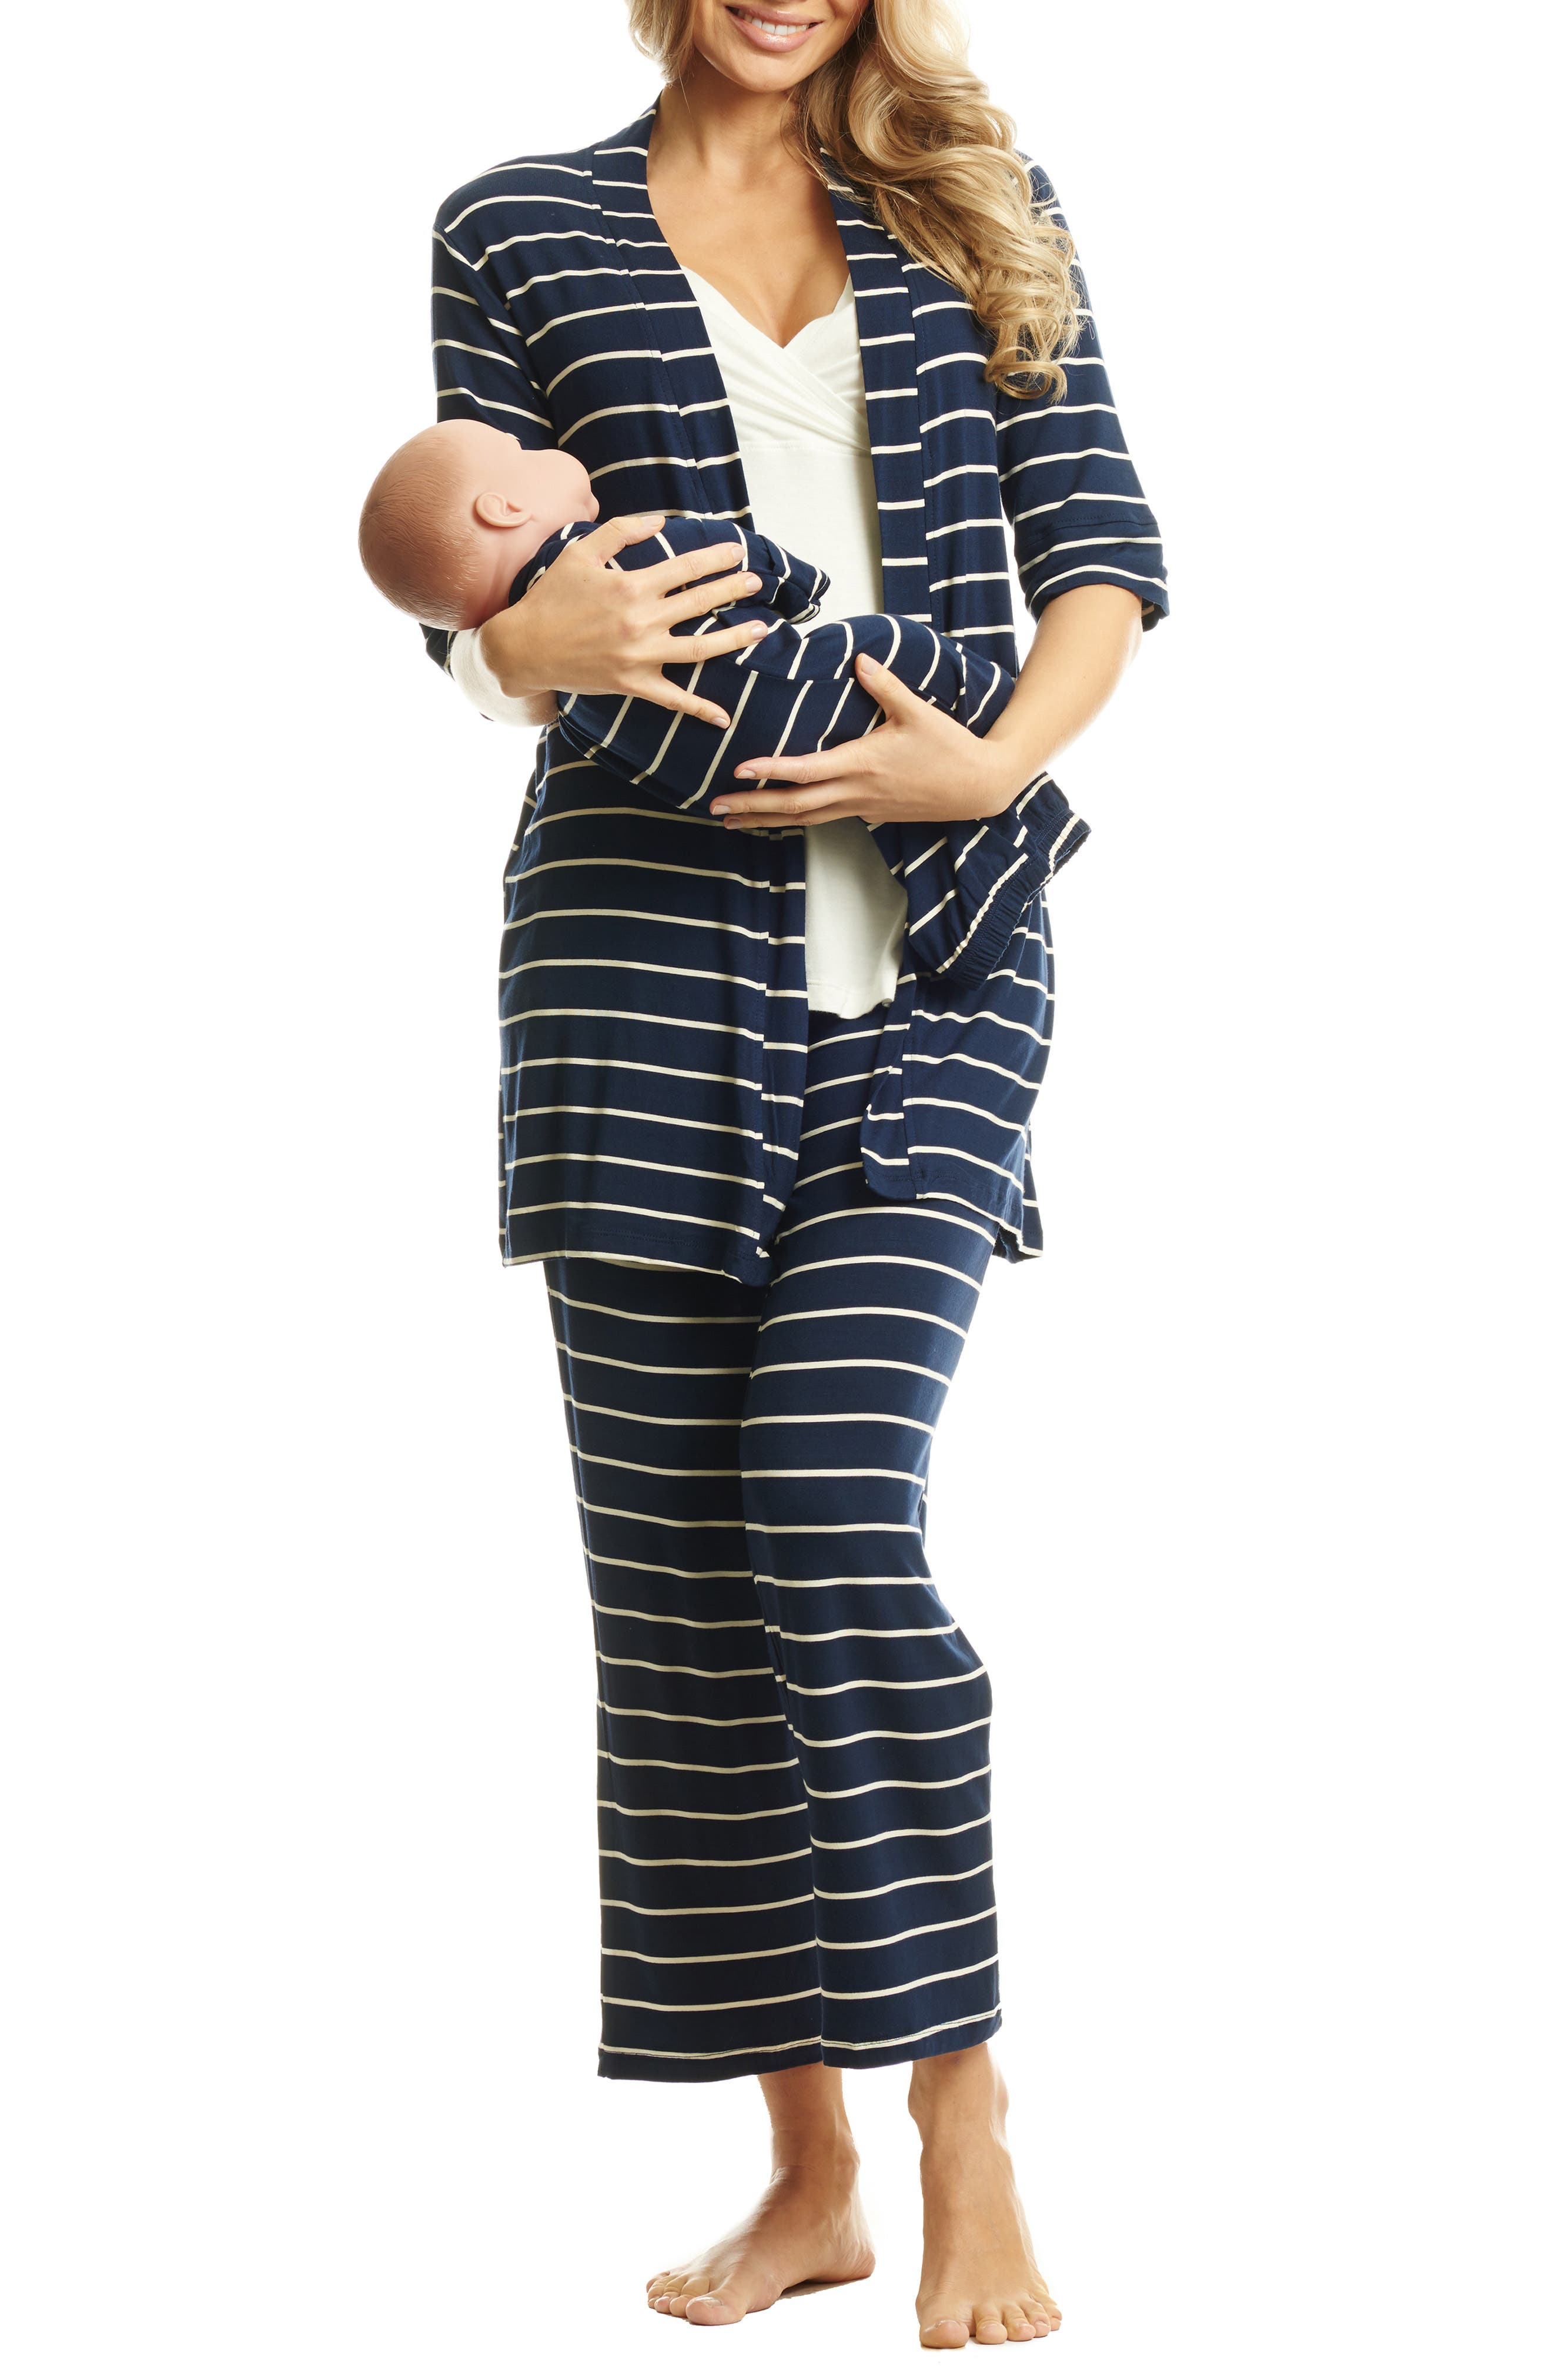 EVERLY GREY, Roxanne - During & After 5-Piece Maternity Sleepwear Set, Main thumbnail 1, color, NAVY